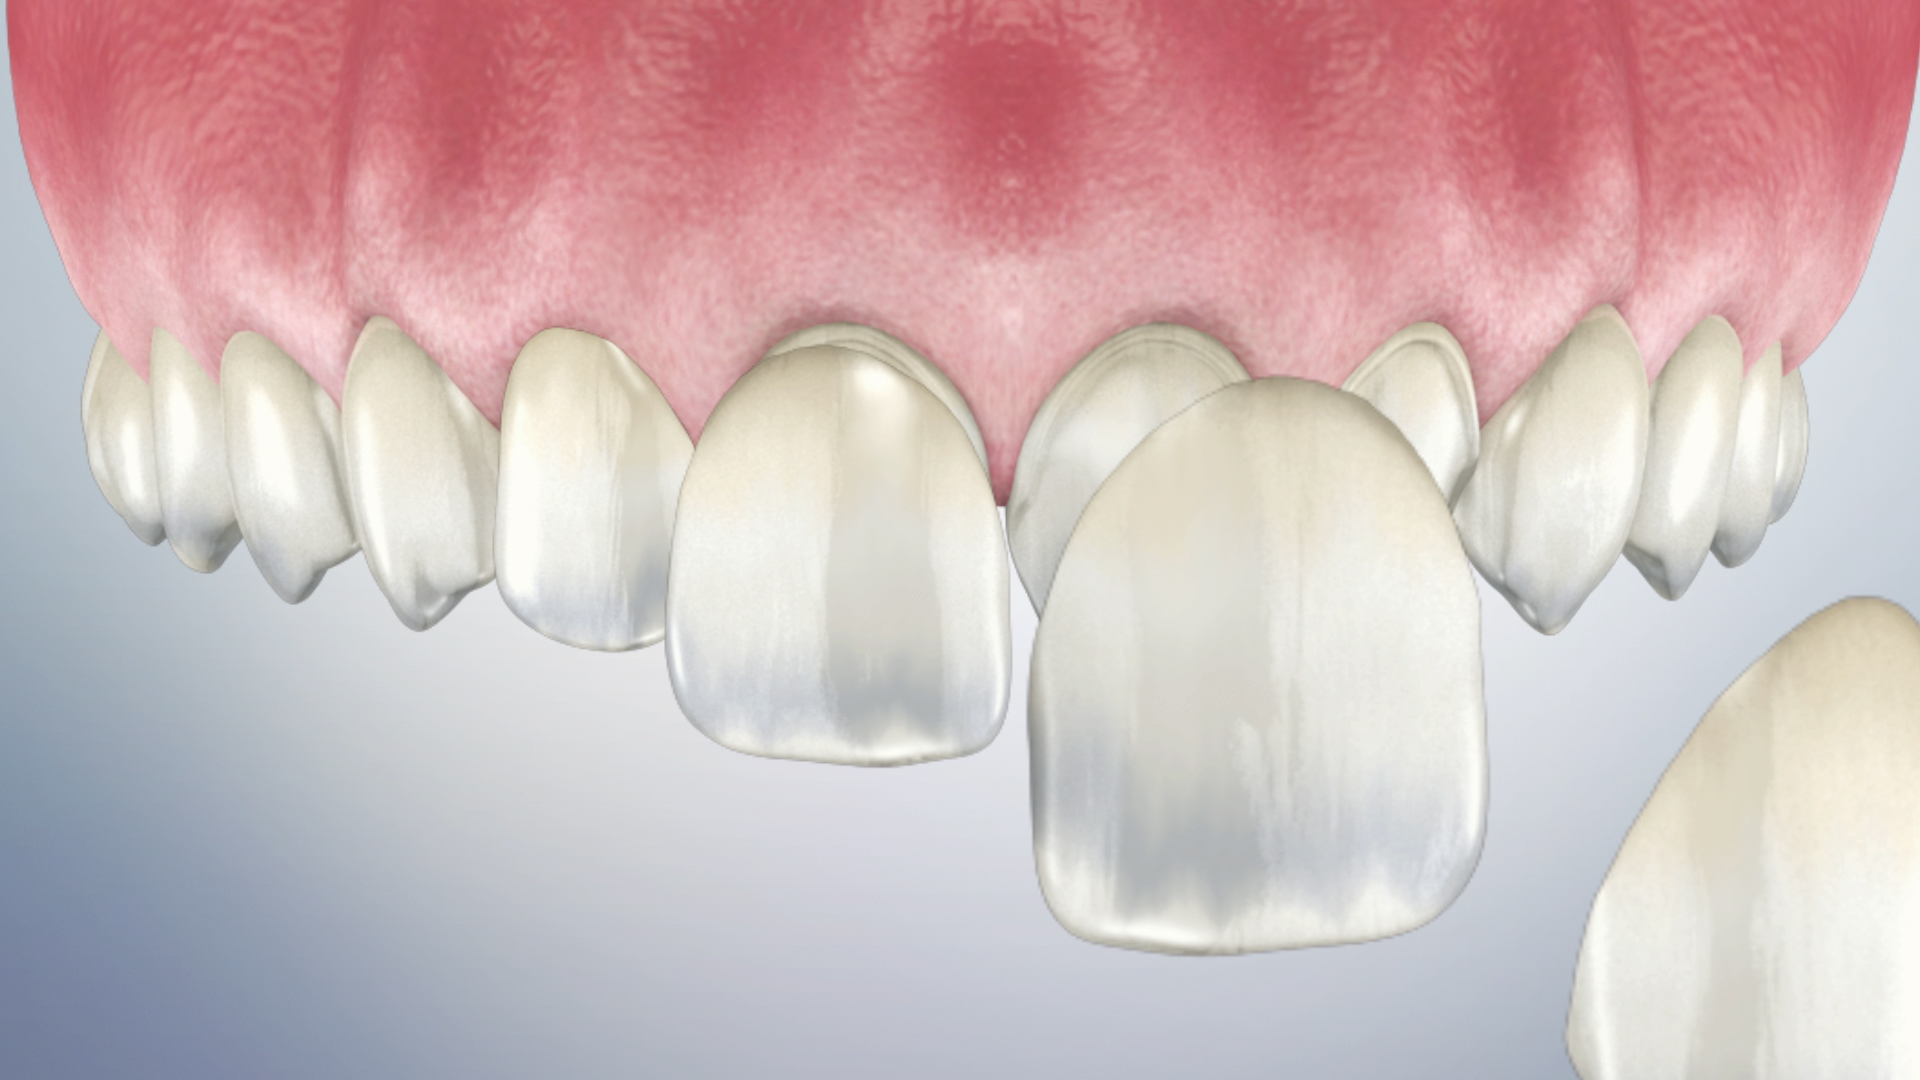 Thumbnail for a video on Post-Operative Instructions for Permanent Veneers